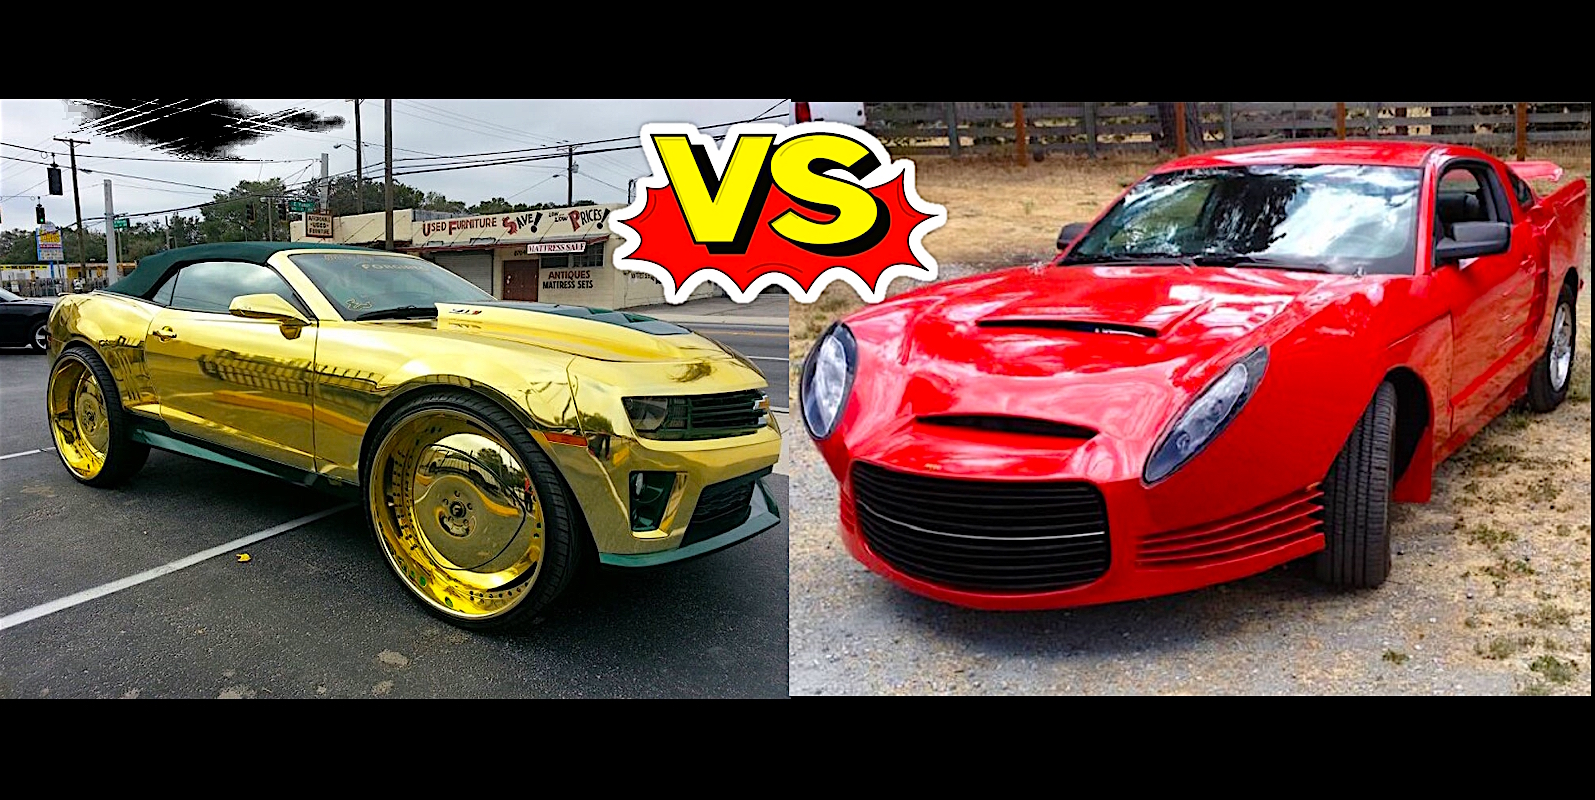 Camaro Vs Mustang >> Fugly-Off - Gold-King Camaro VS Bad Mustang